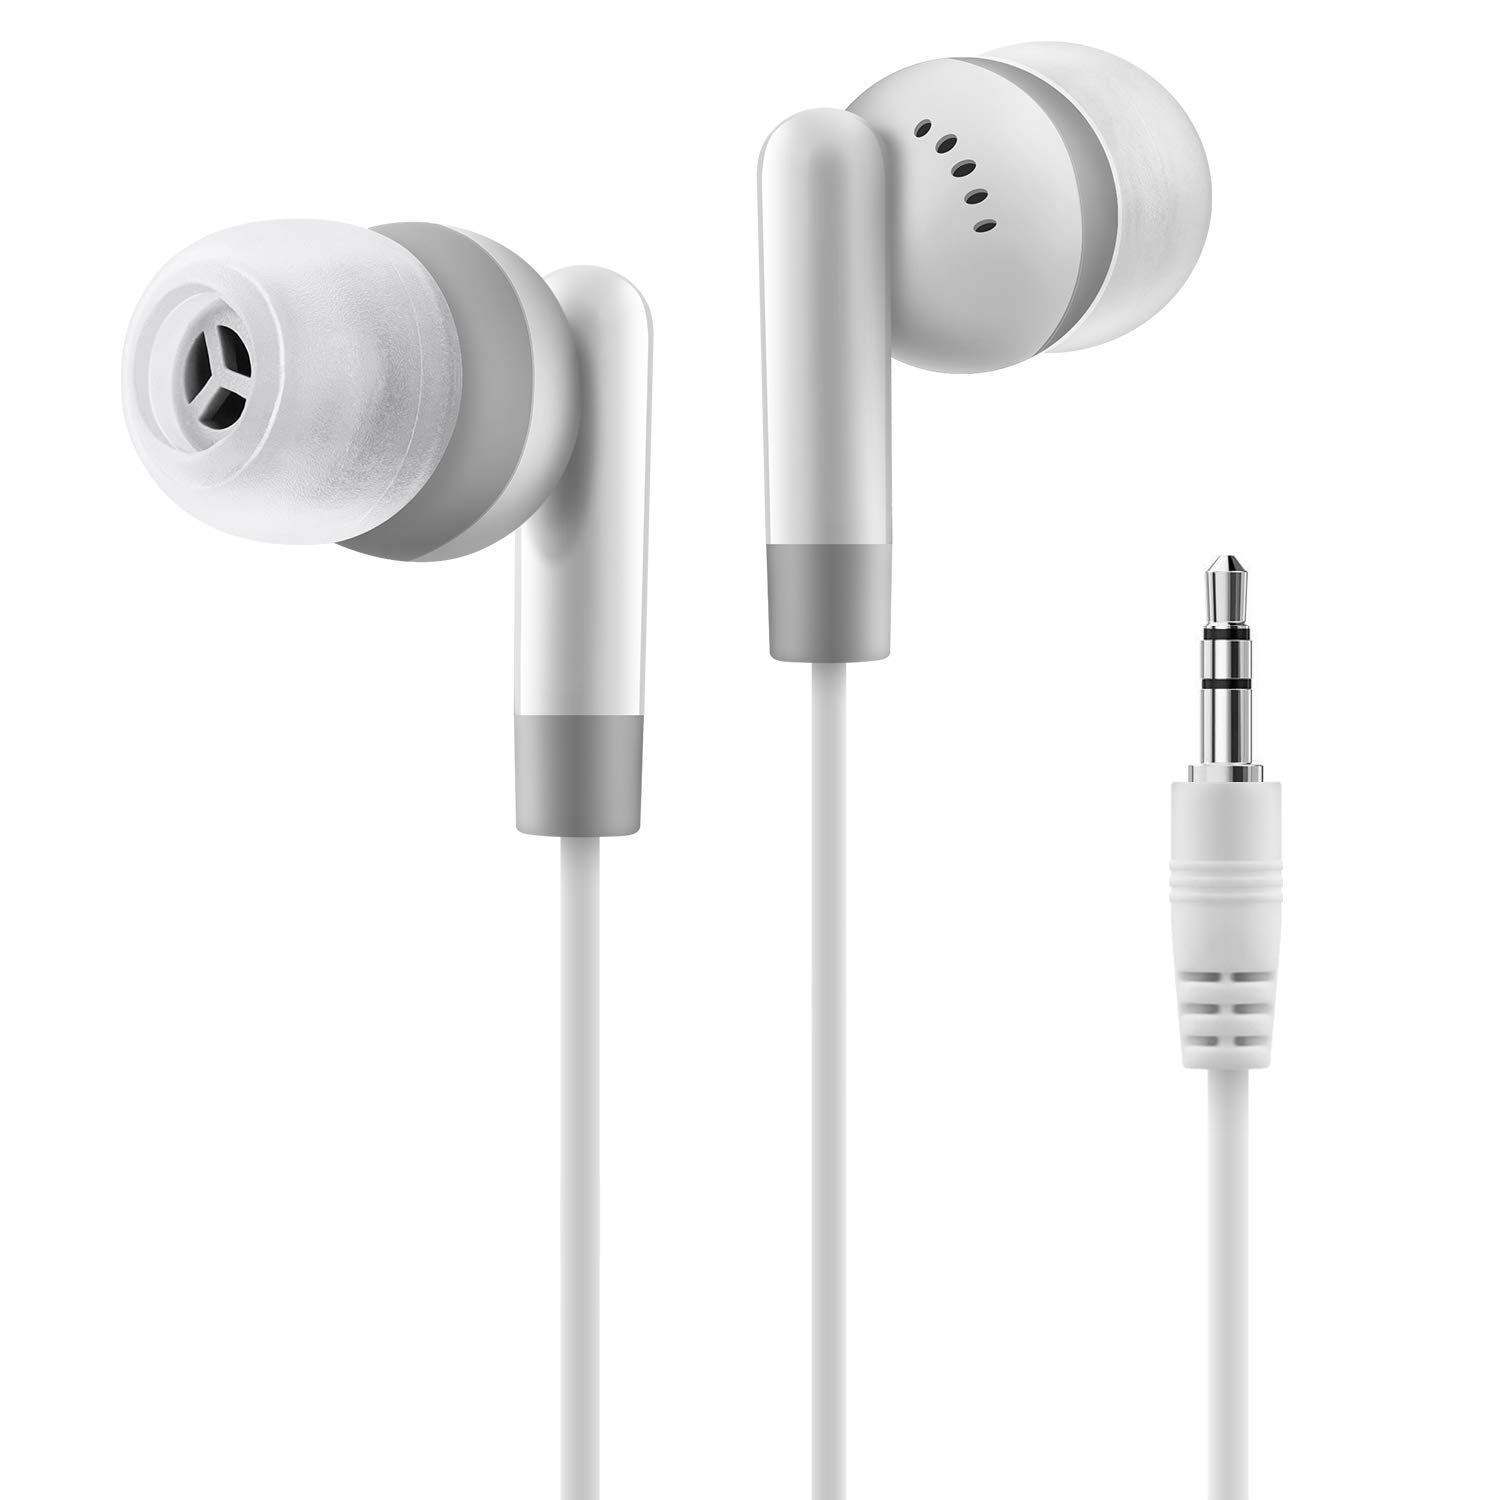 Great Noise Cancelling EarBuds but a bit overpriced!